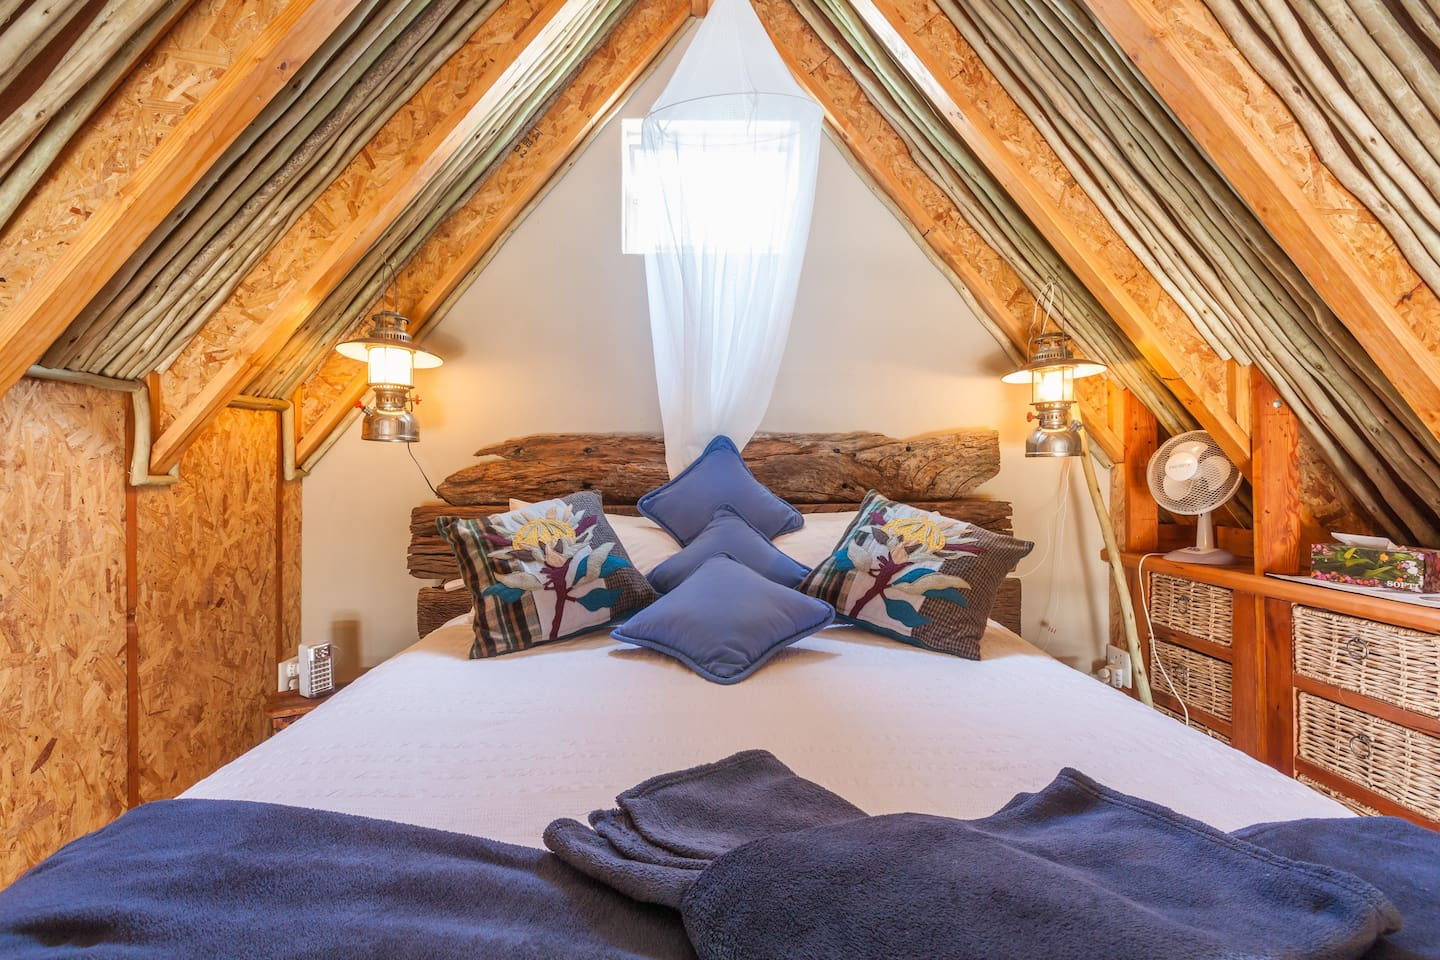 Sleeping loft with double bed and vaulted roof